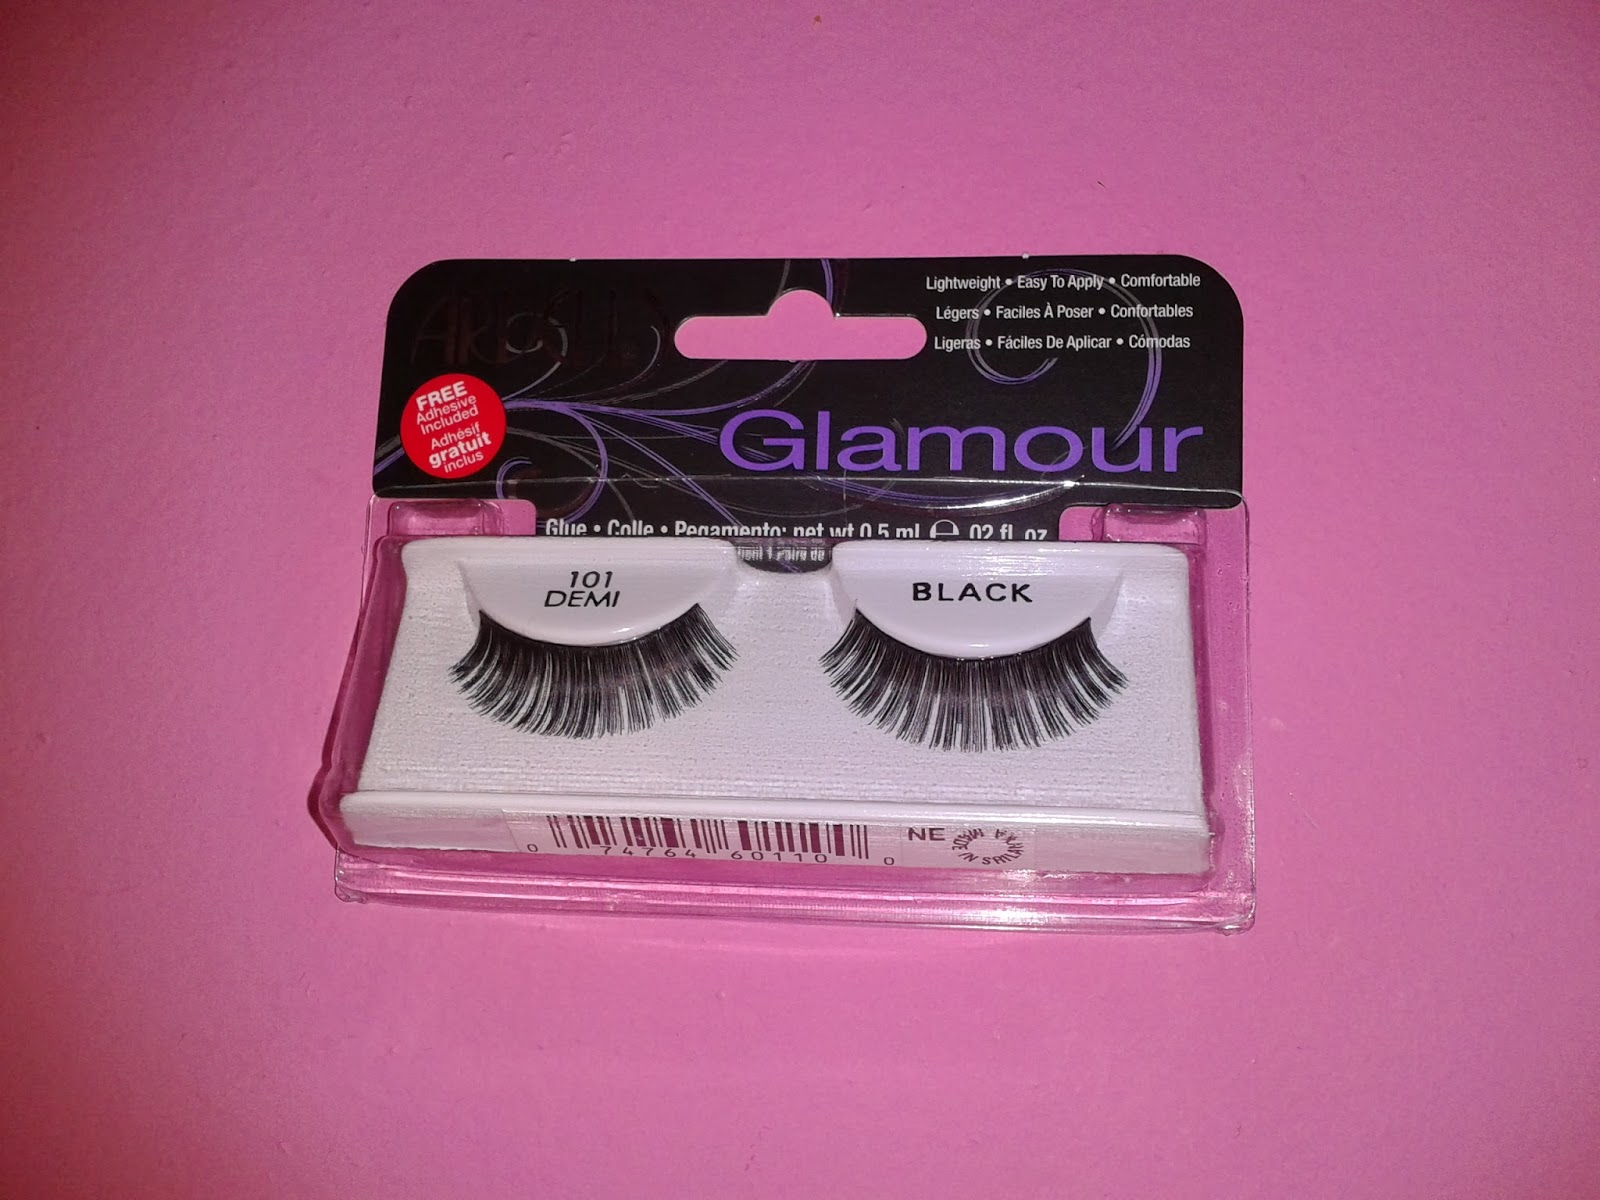 Ardell fashion lashes #101 demi 59